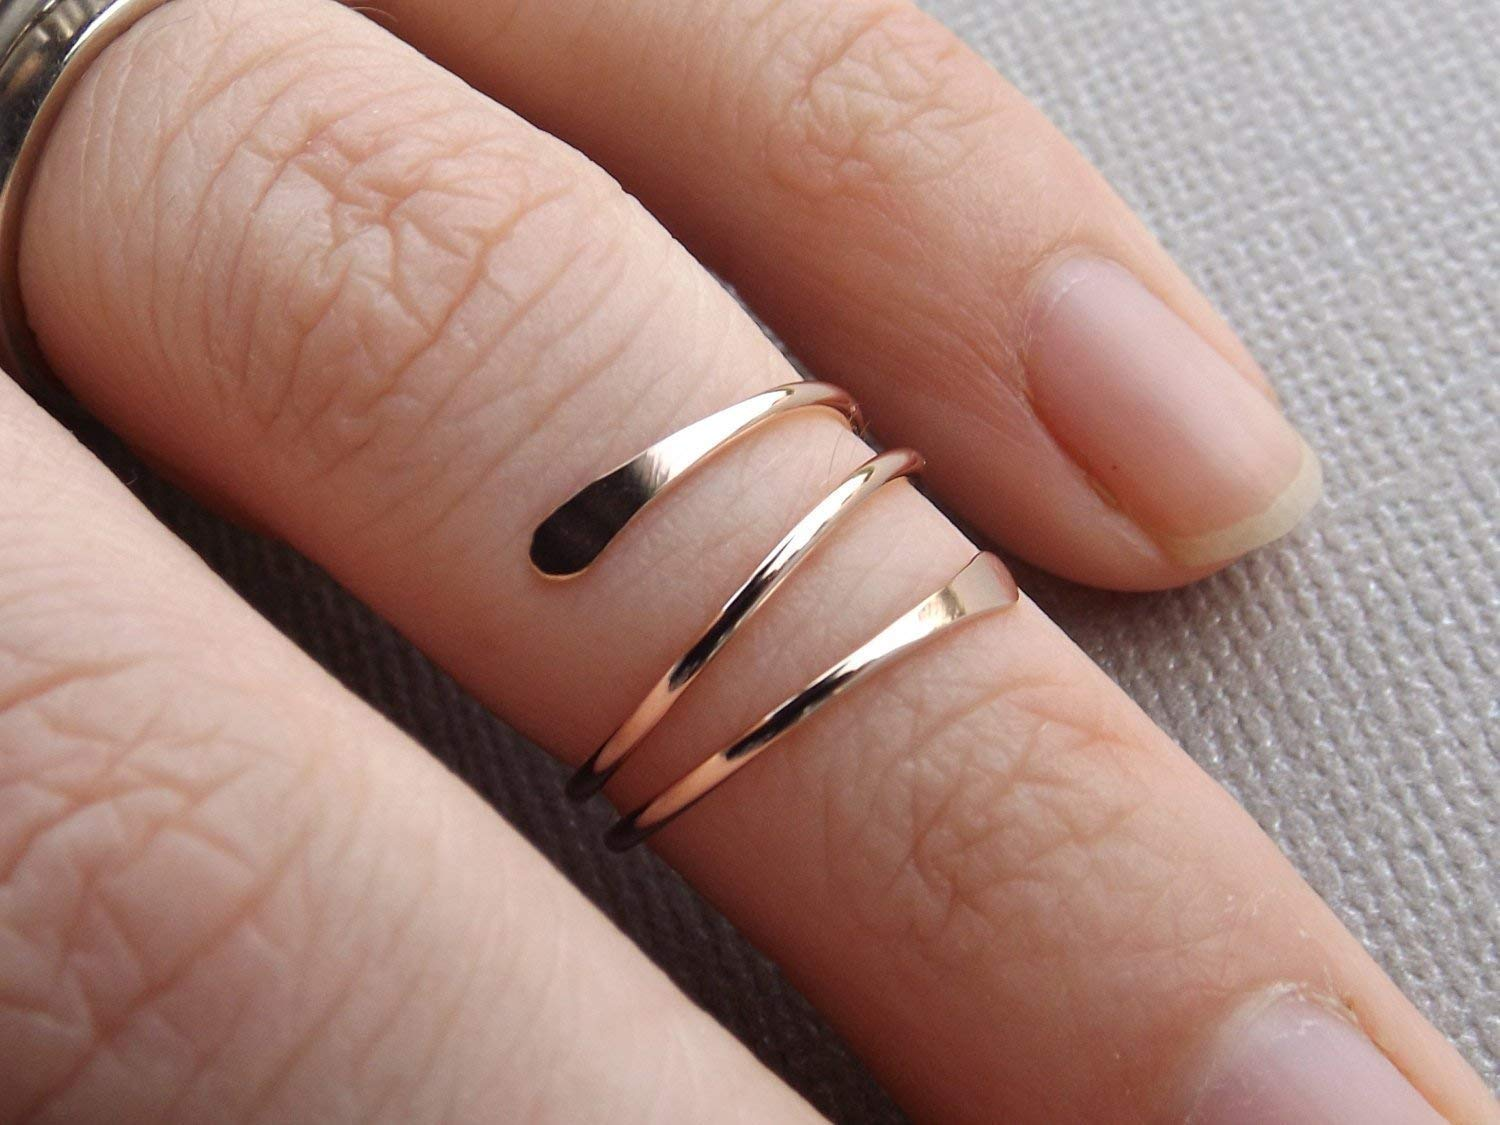 14k Gold or Rose Fill Knuckle Ring, Knuckle Rings,Mid Rings,Above knuckle ring, Toe Rings, Rings, Rose or Gold Fill Knuckle Ring …